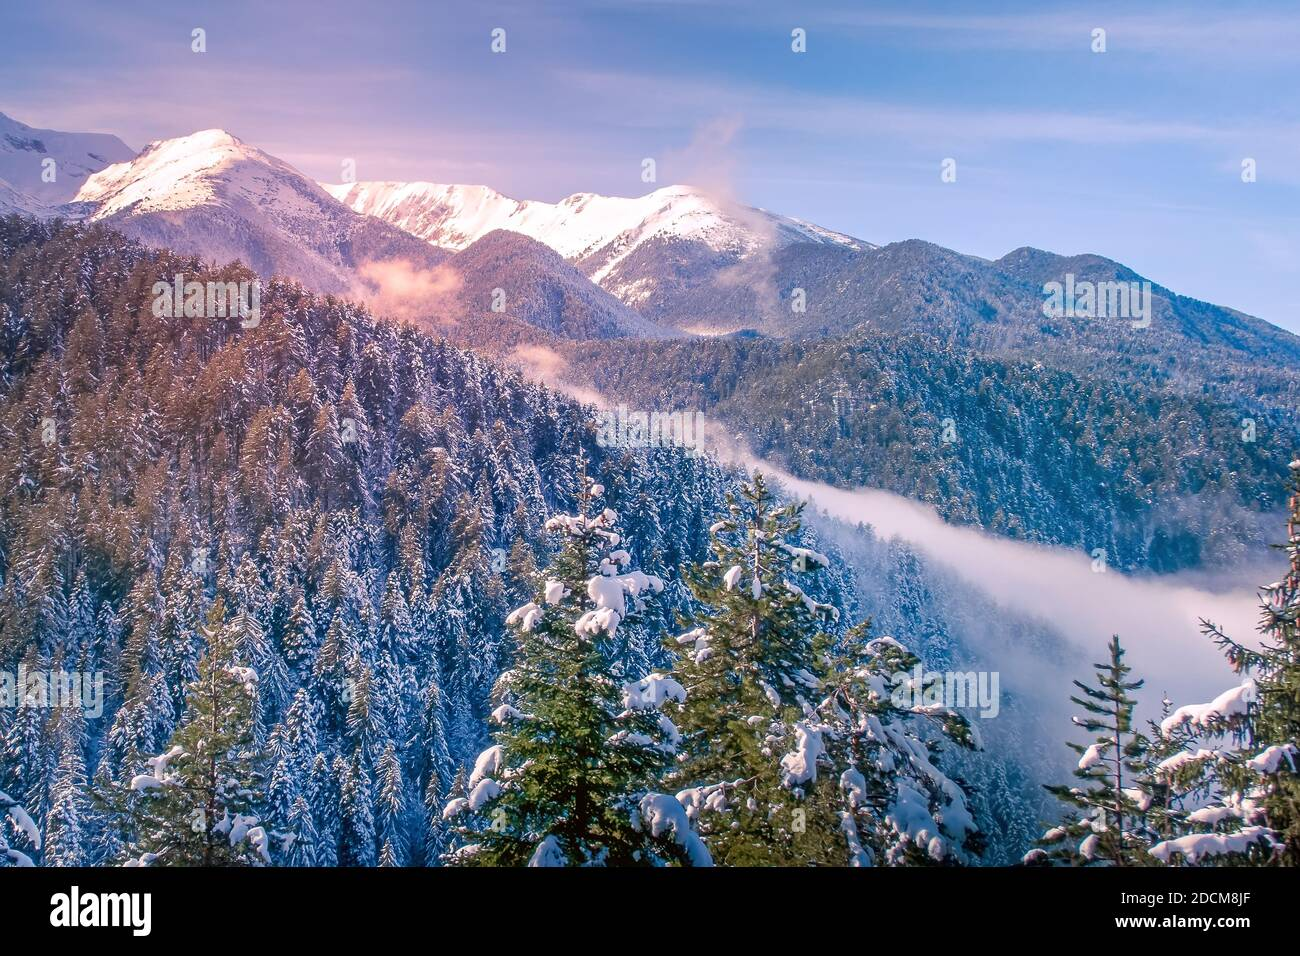 Colorful winter landscape with pink sunset view, pine trees and snow mountain peaks of Pirin, Bulgaria Stock Photo